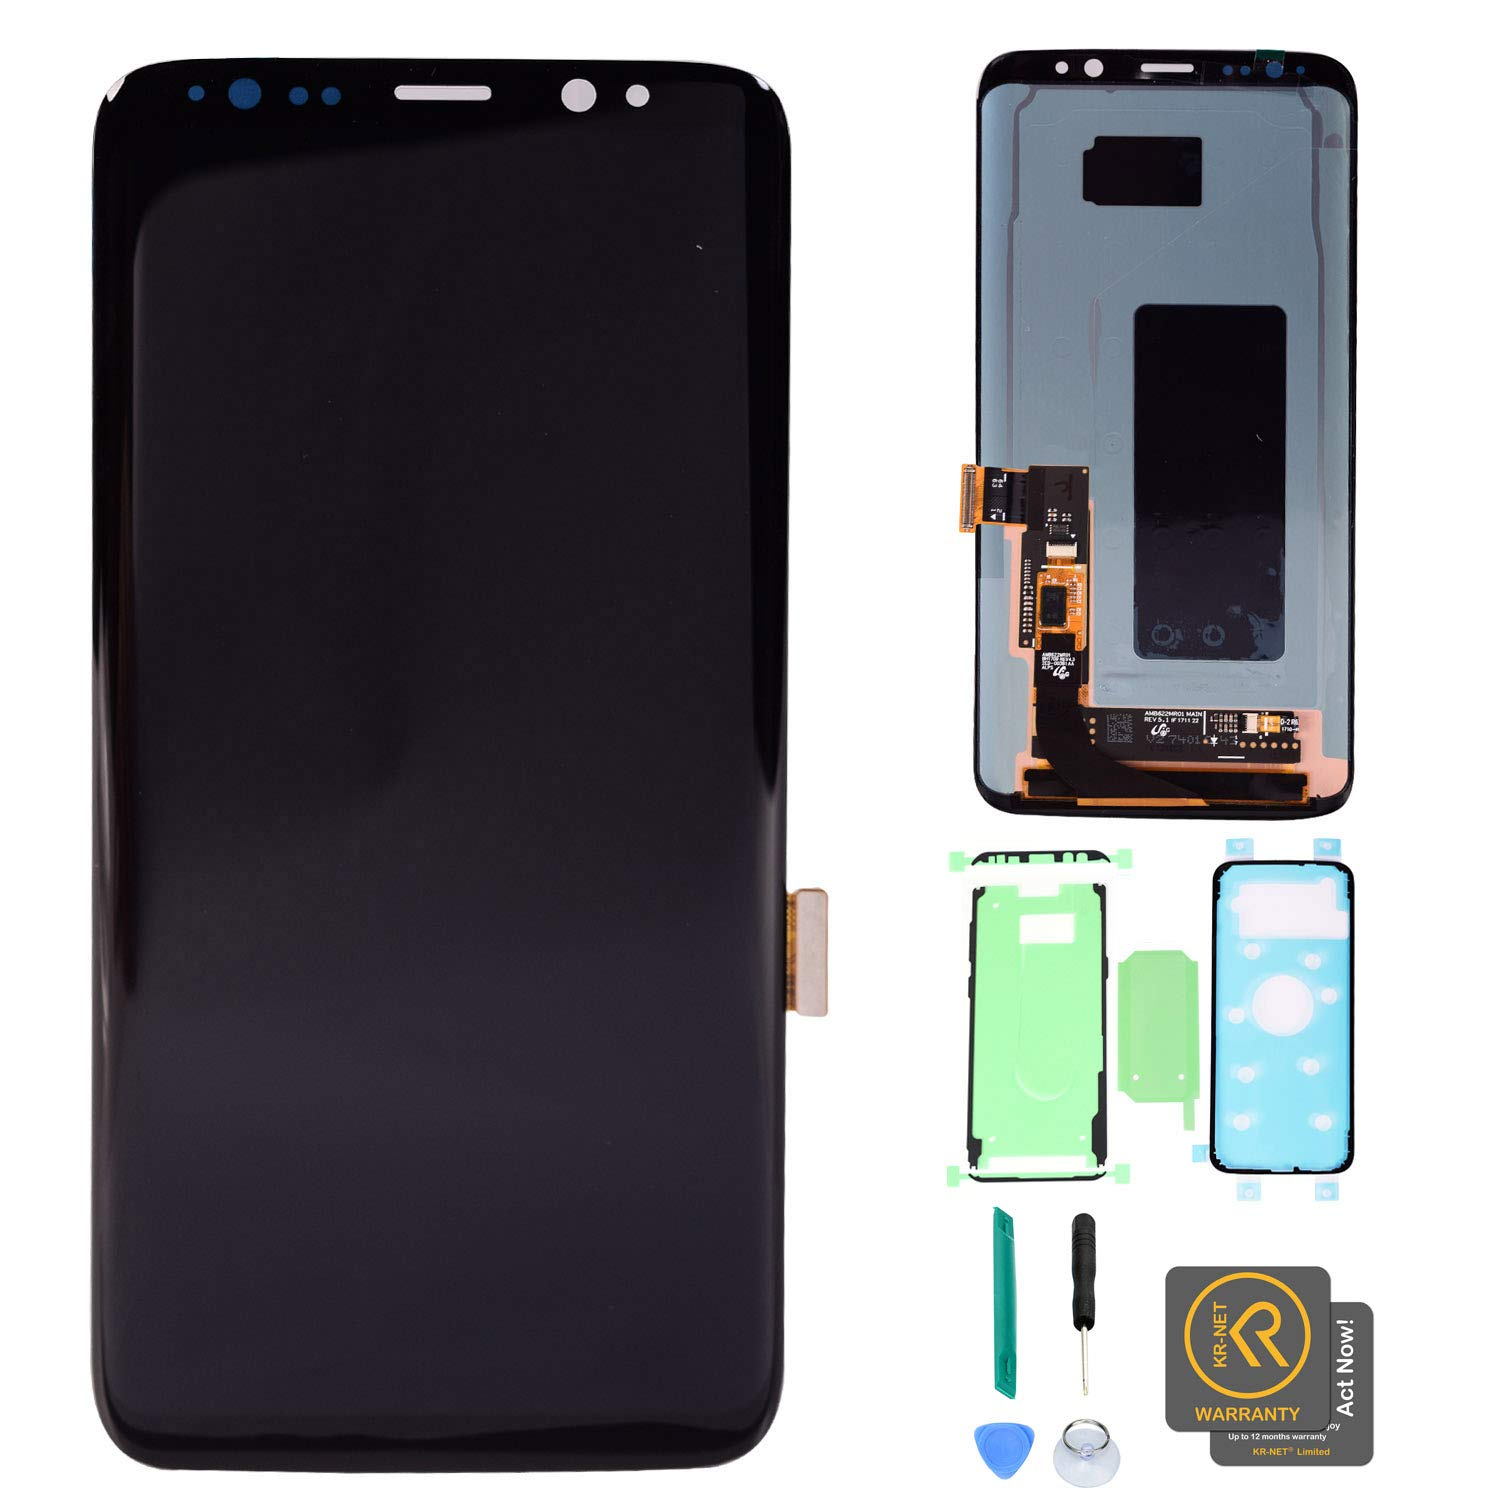 KR-NET AMOLED LCD Display Touch Screen Digitizer Assembly Replacement + Full Set PreCut Adhesive for Samsung Galaxy S8+ Plus G955F G955A G955P G955V G955T G955R4 by KR-NET